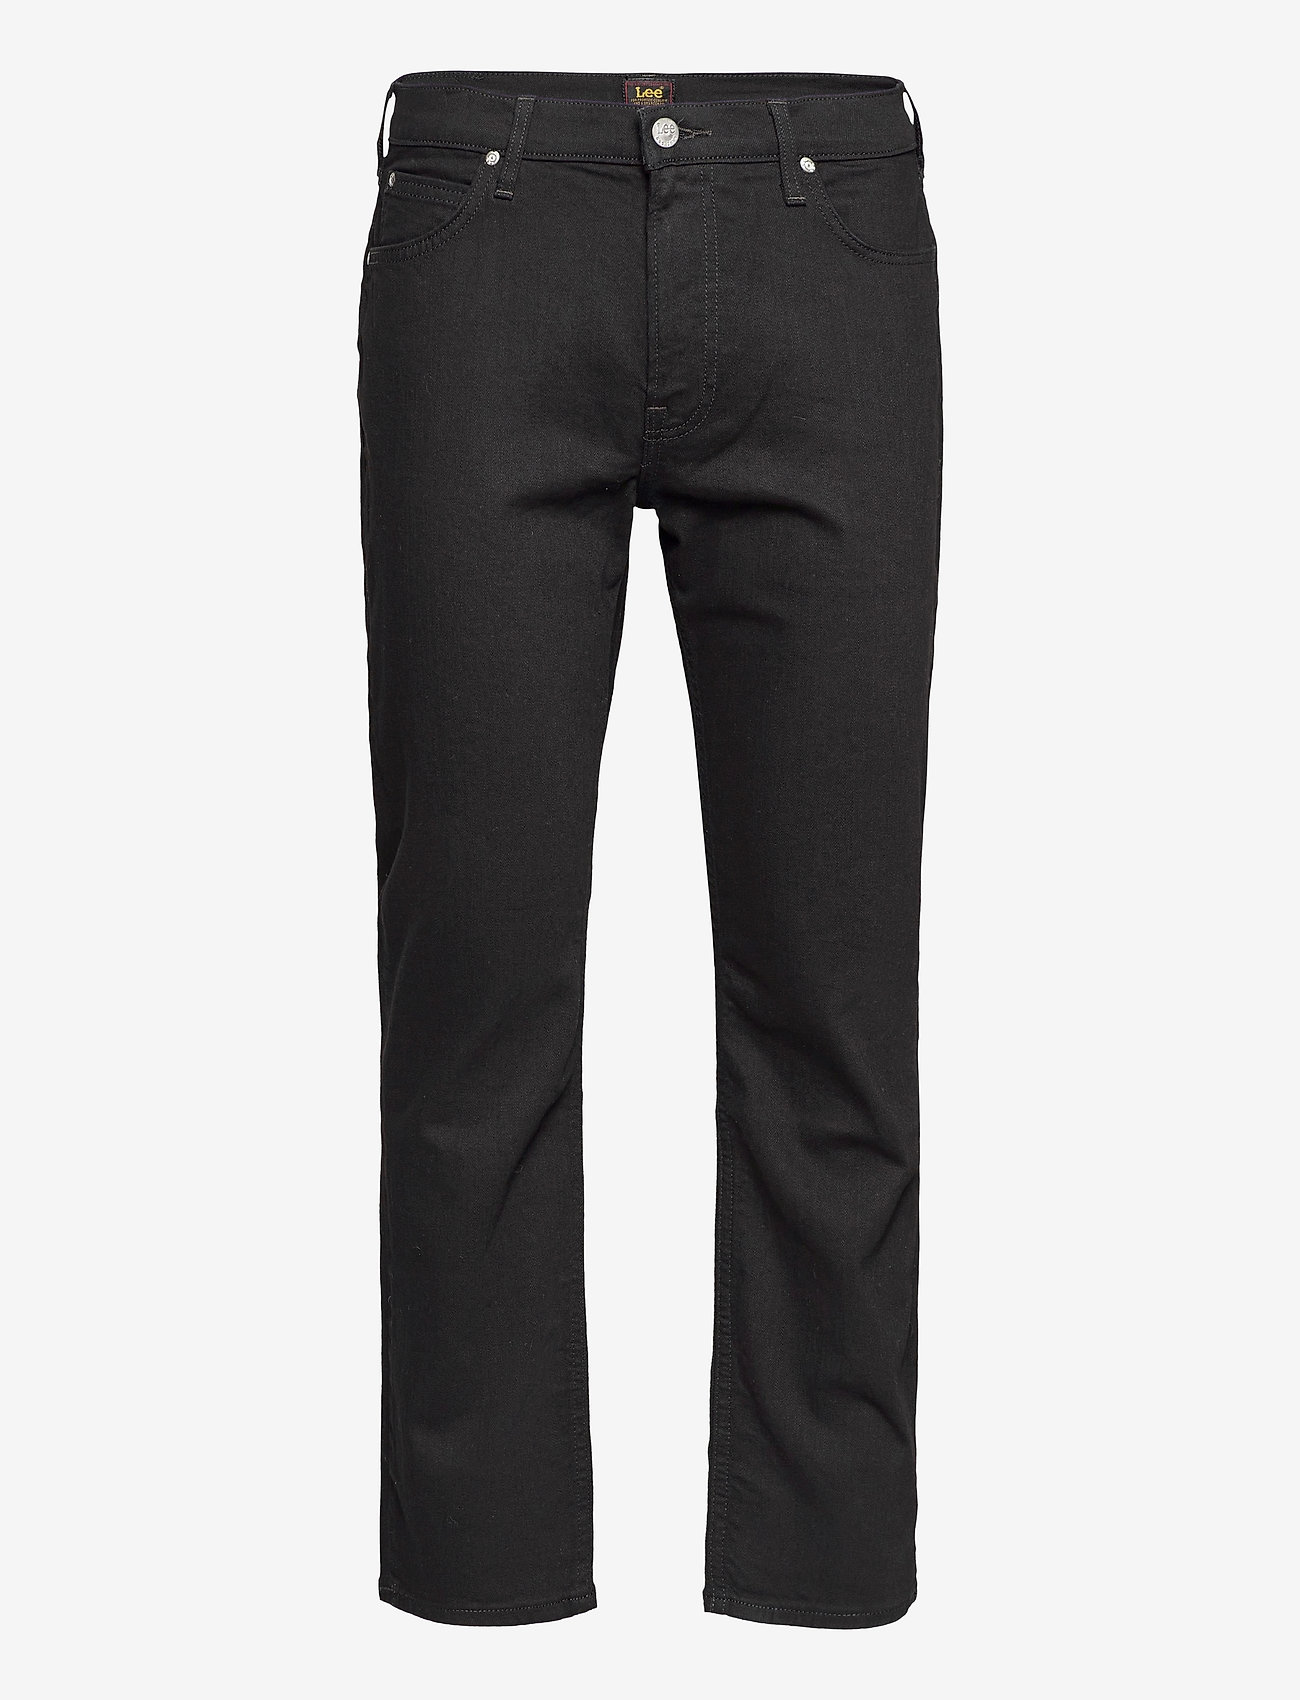 Lee Jeans - WEST - relaxed jeans - clean black - 0